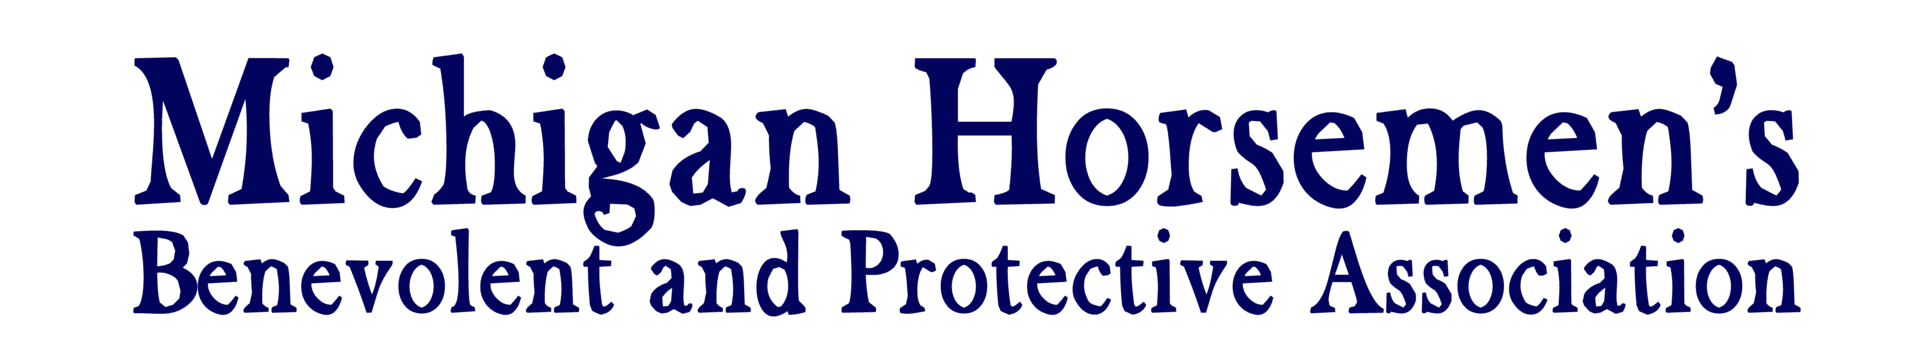 Michigan Horsemen's Benevolent and Protective Association